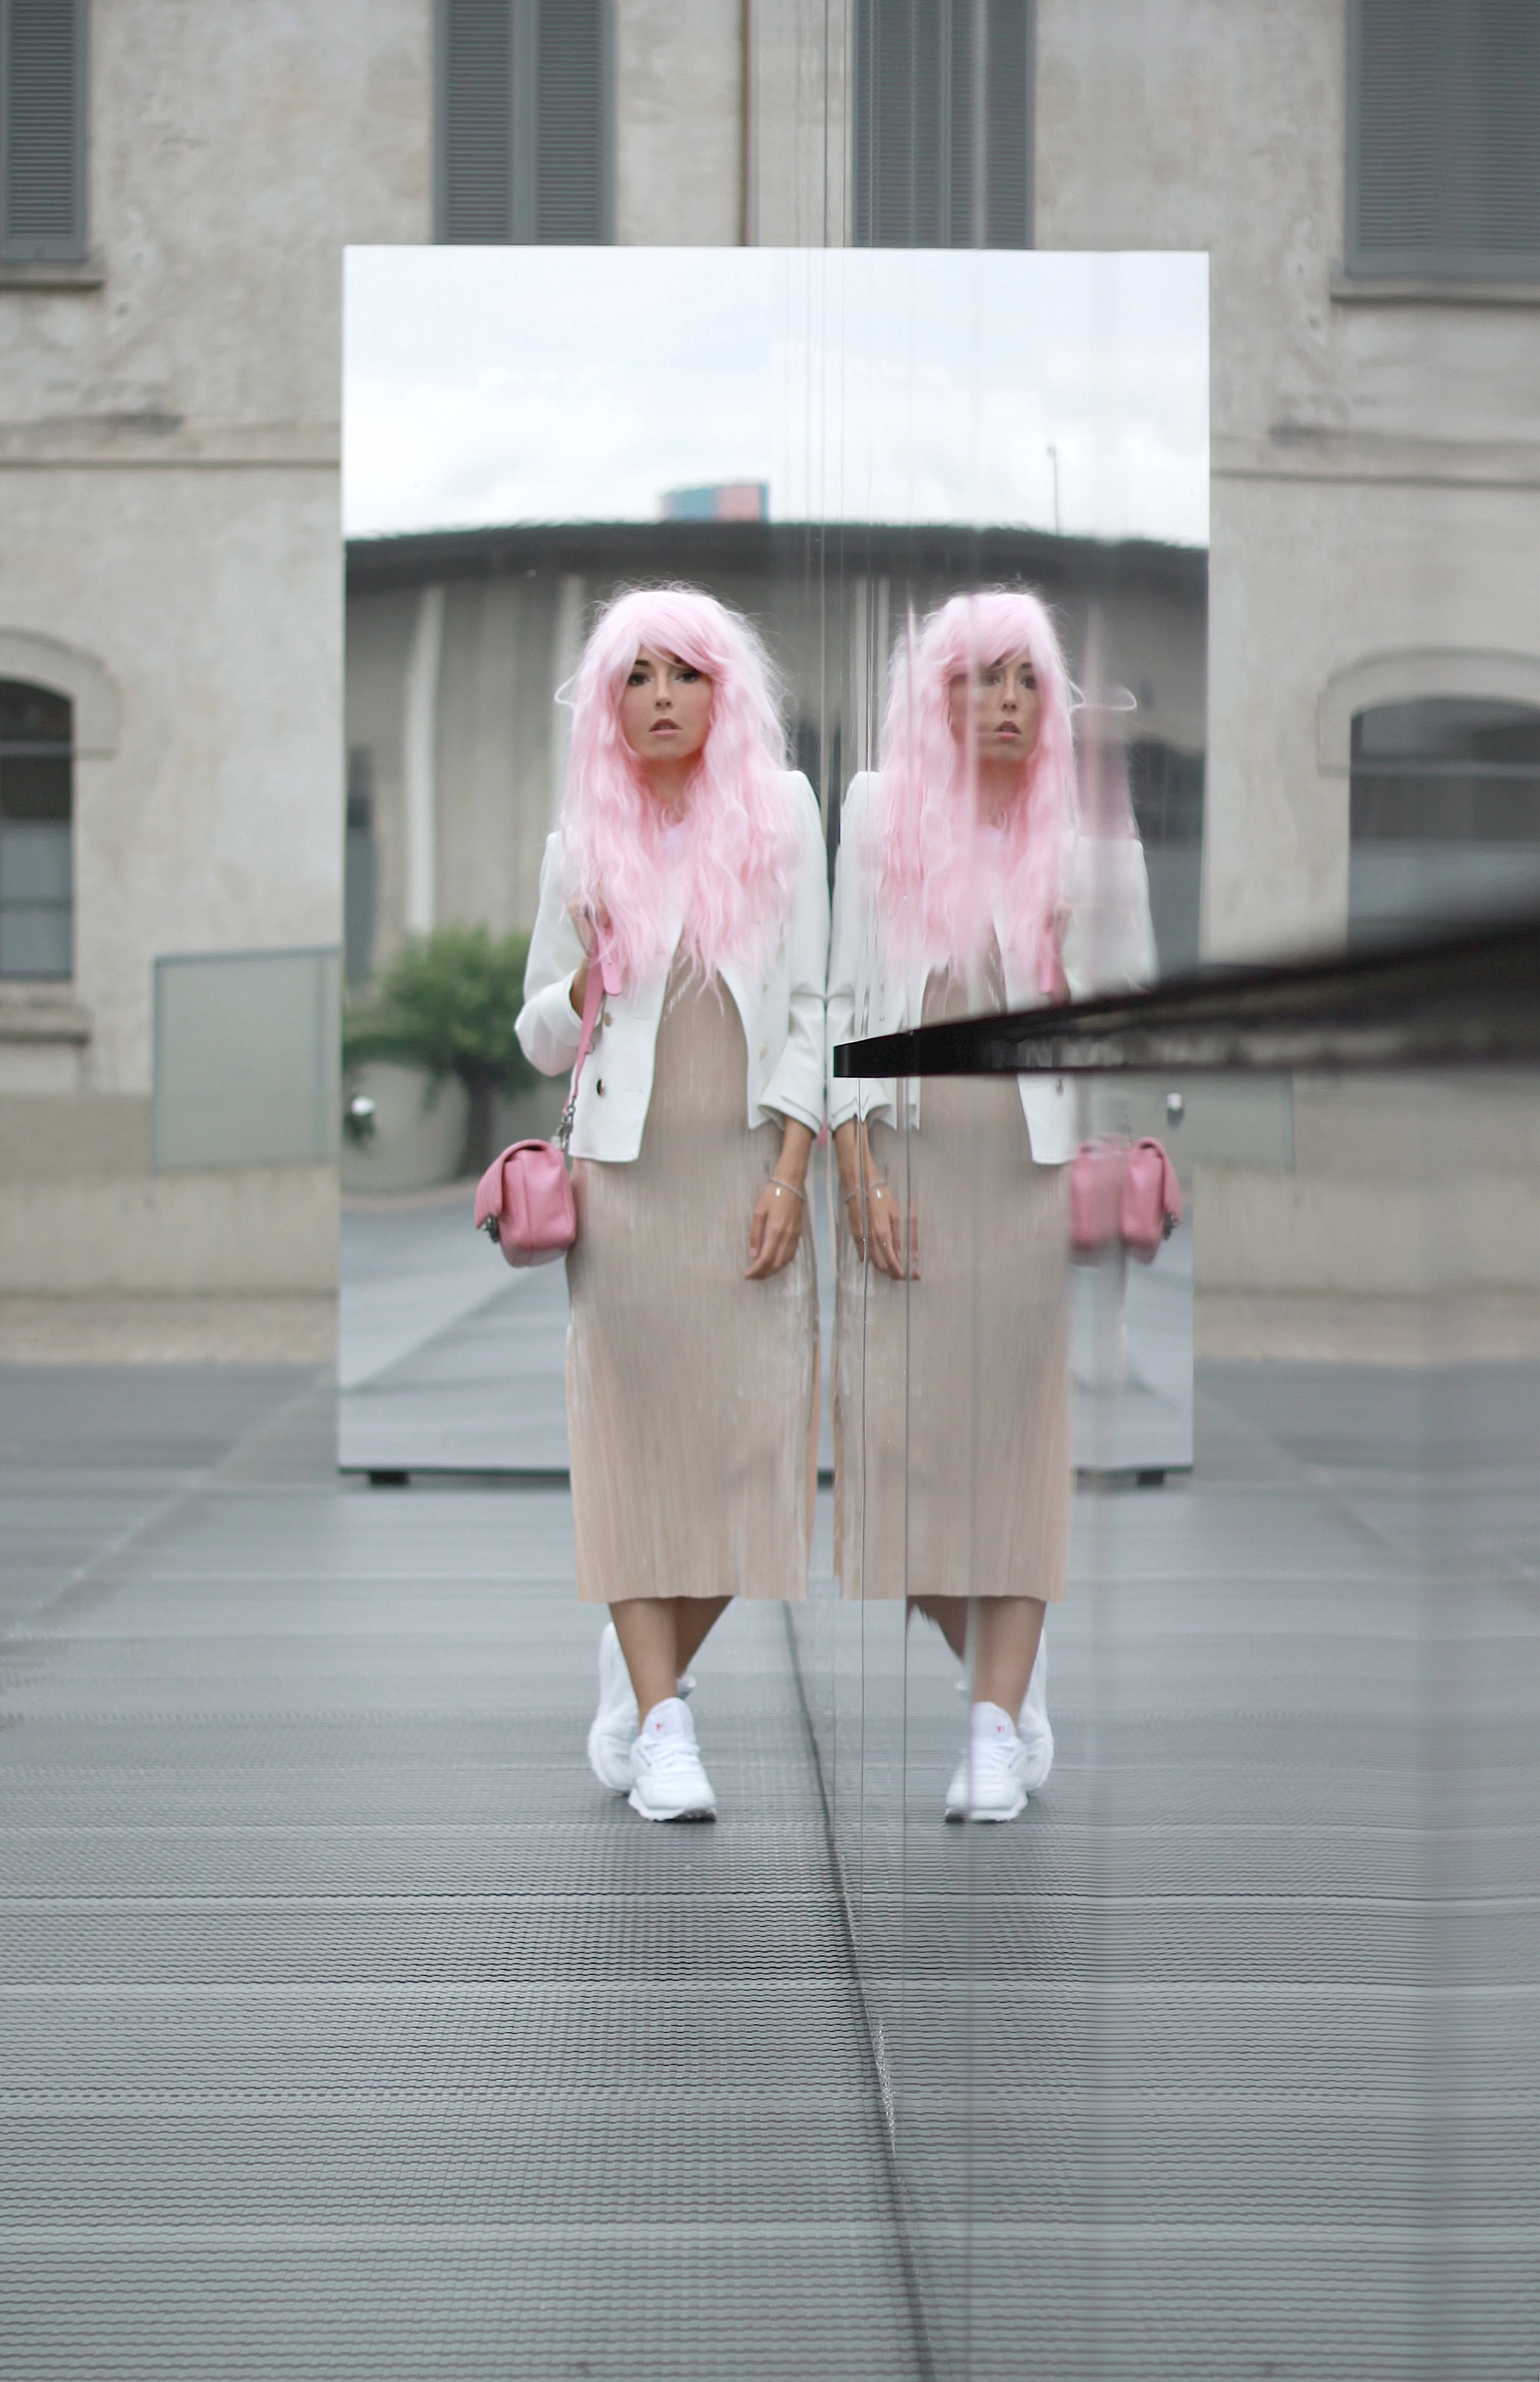 gucci cruise 2017, guccismo, theladycracy.it, elisa bellino, gucci alessandro michele opinioni, outfit blogger estate 2016, come si portano le sneakers con abito, vestito zara 2016, borsa chanel rosa originale, chanel pink bag authentic, pink long hair outfit blogger, kawaii, manga trucco, fondazione prada, fashion blog, fashion blogger italiane, fashion blogger famose 2016, fashion blogger italia 2016, fashion blog 2016, fashion influencer 2016, fashion blogger milano 2016, fashion blogger outfit estate 2016, cosa va di moda, sporty chic outfit estate 2016,